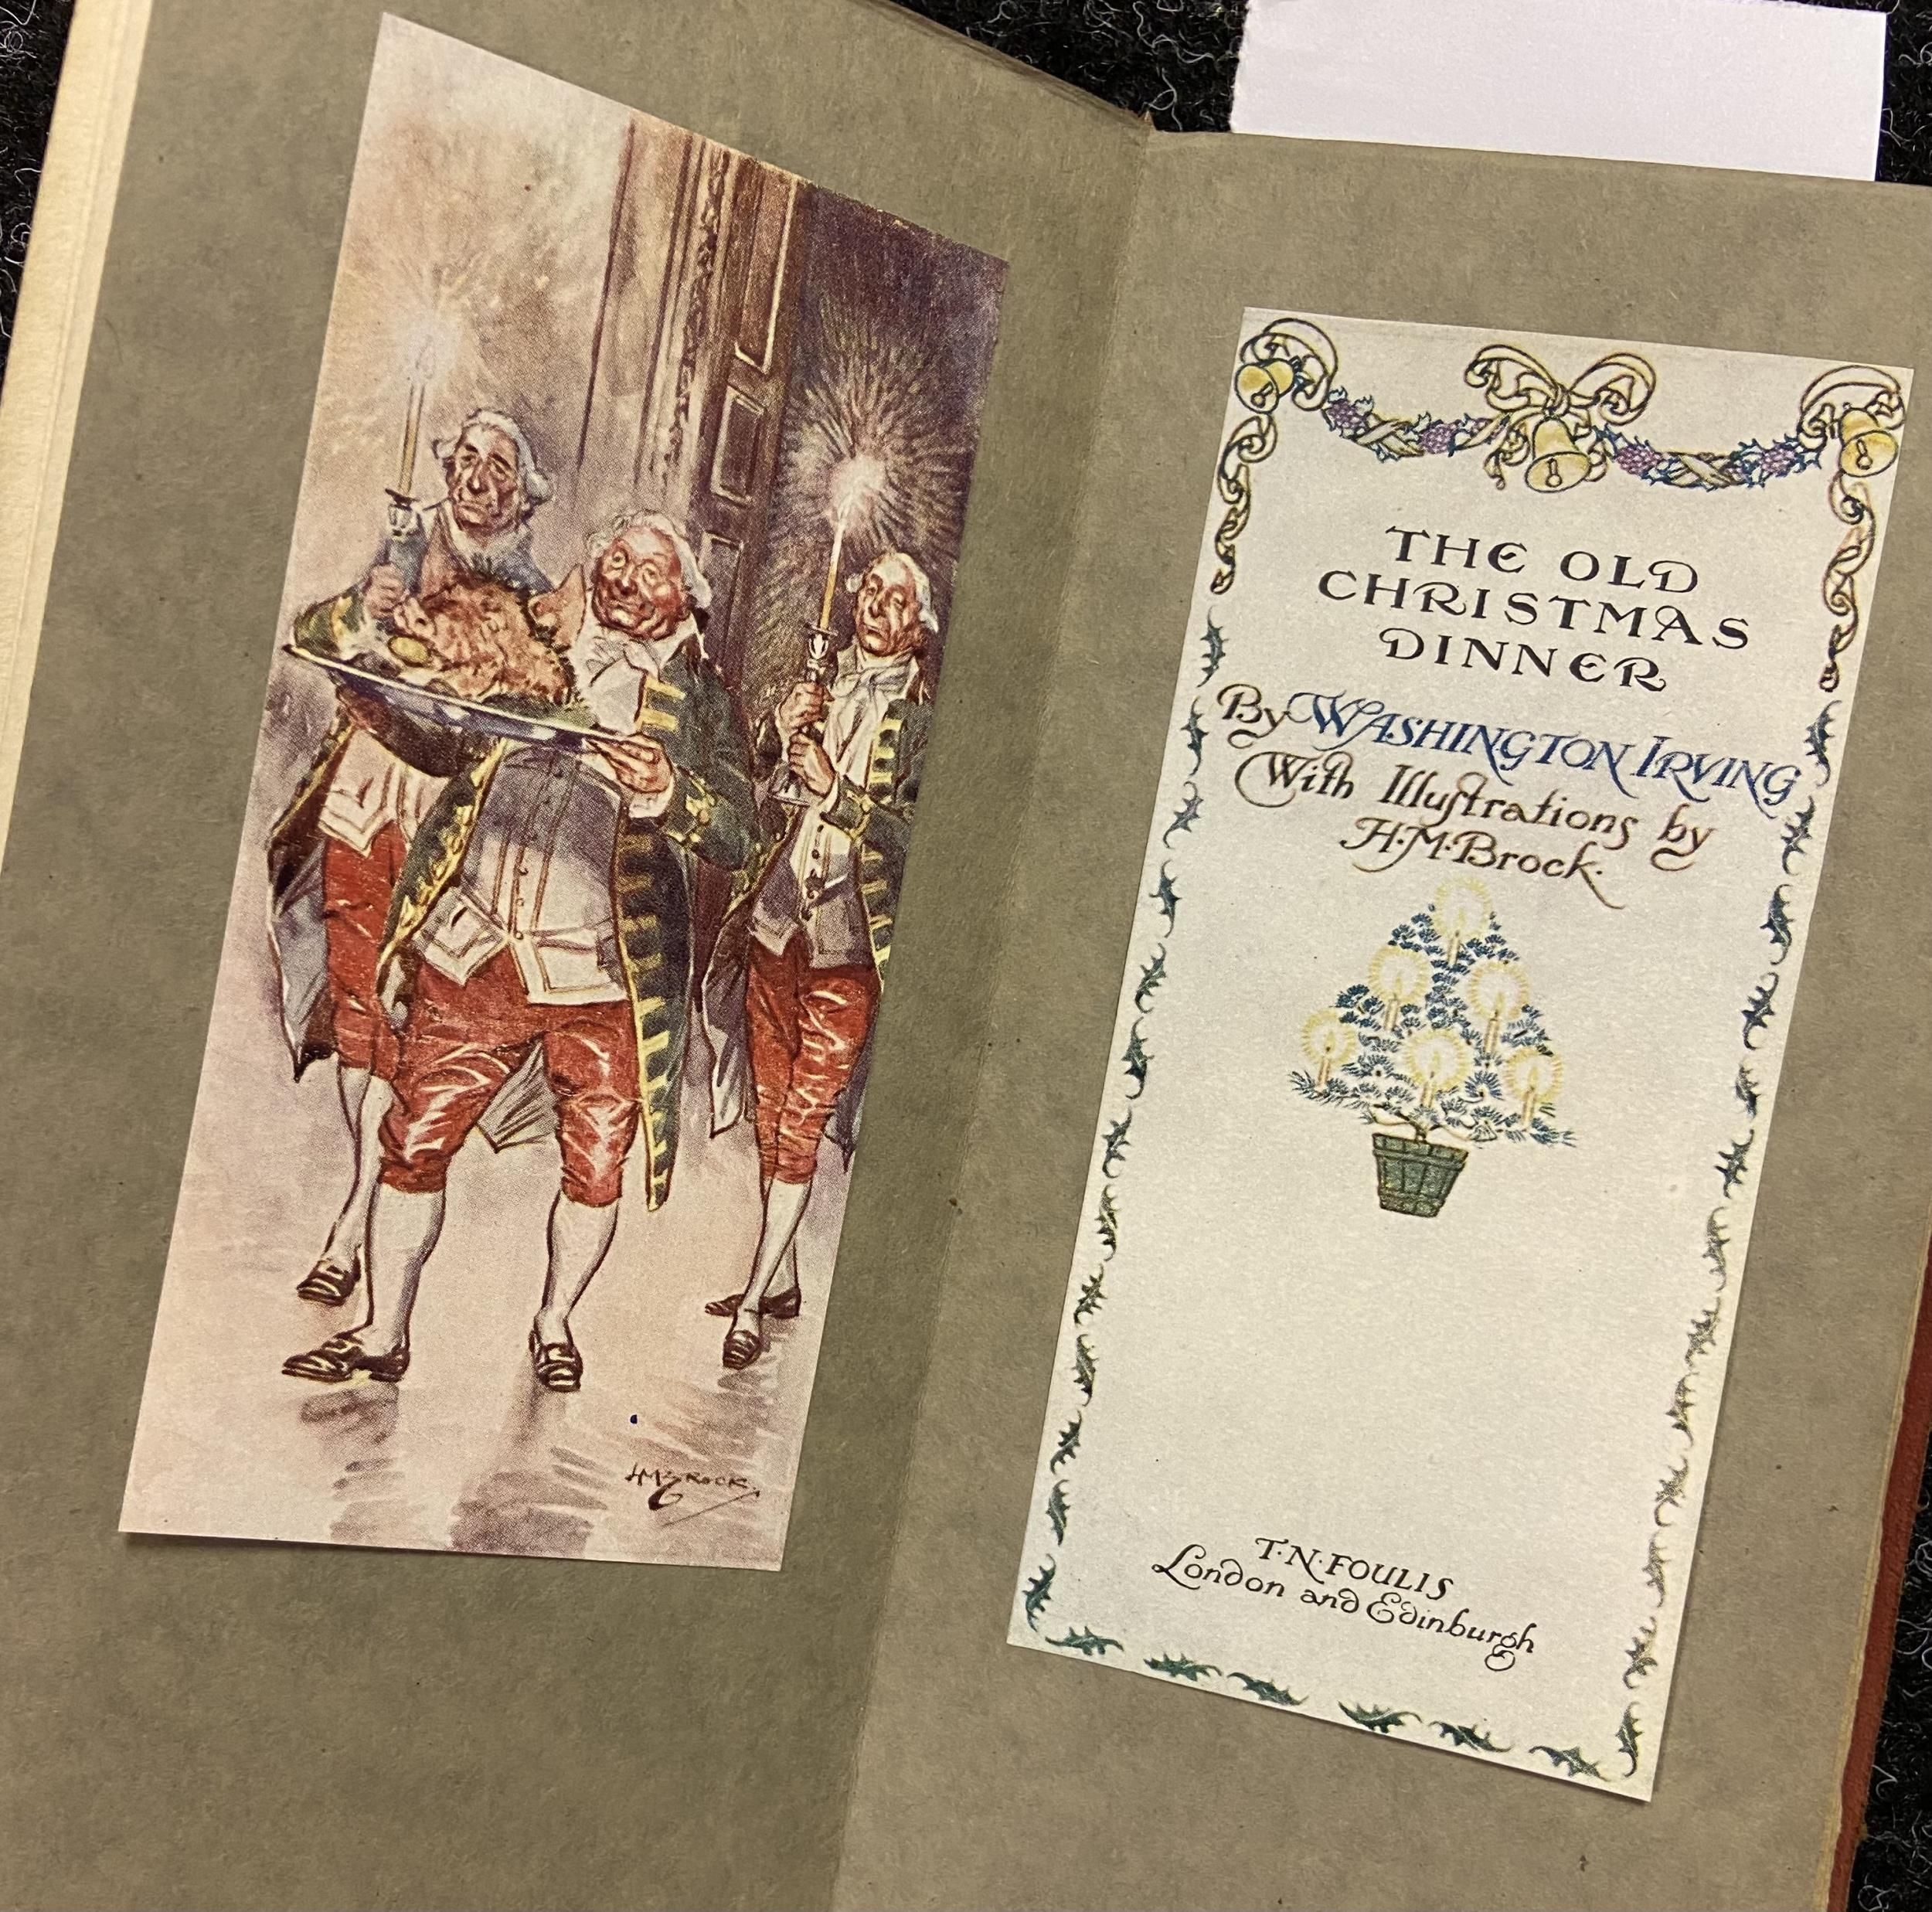 'The Old Christmas Dinner by Washington IRVING with Illustrations by H.M Brock - Image 2 of 4